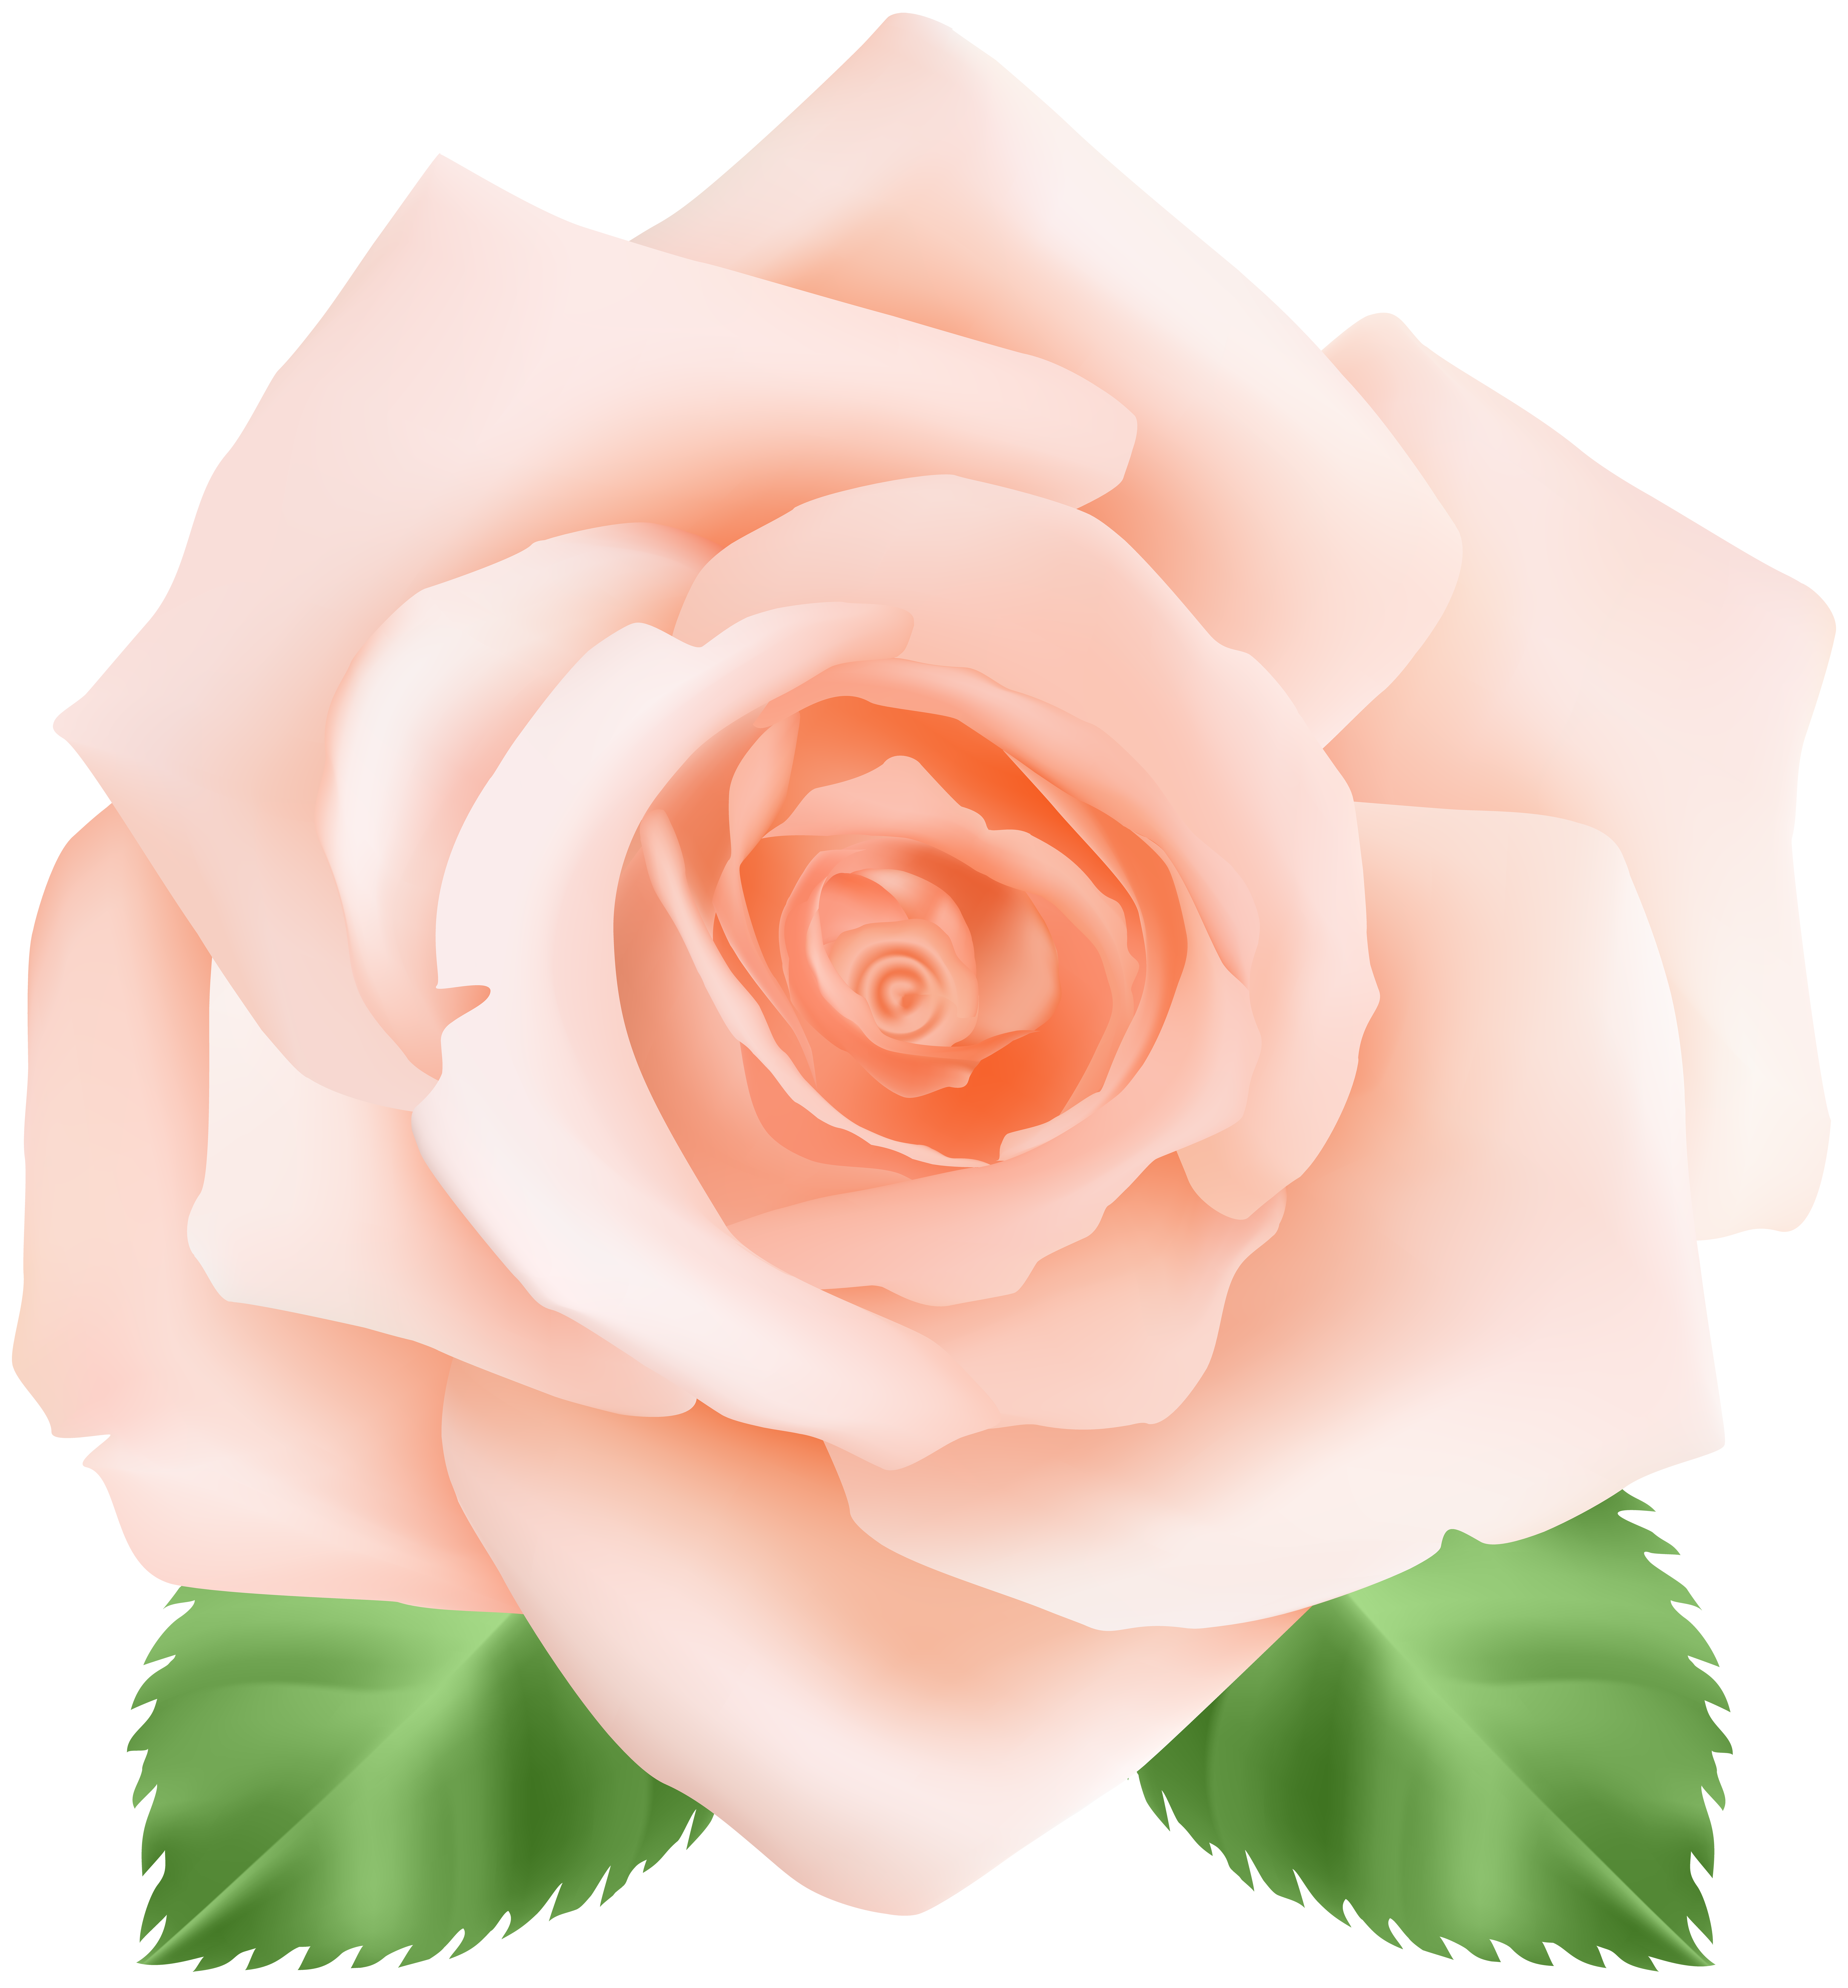 Peach flower clipart picture library library Peach Rose PNG Clip Art Image | Gallery Yopriceville - High-Quality ... picture library library